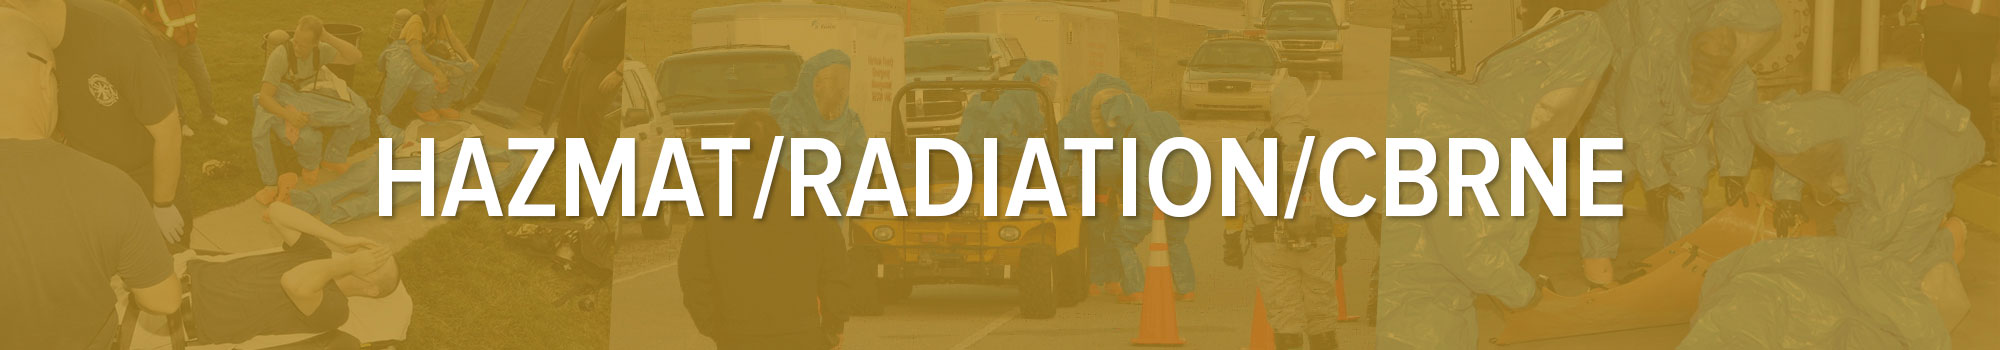 A banner for the hazmat, radiation, CBRNE page